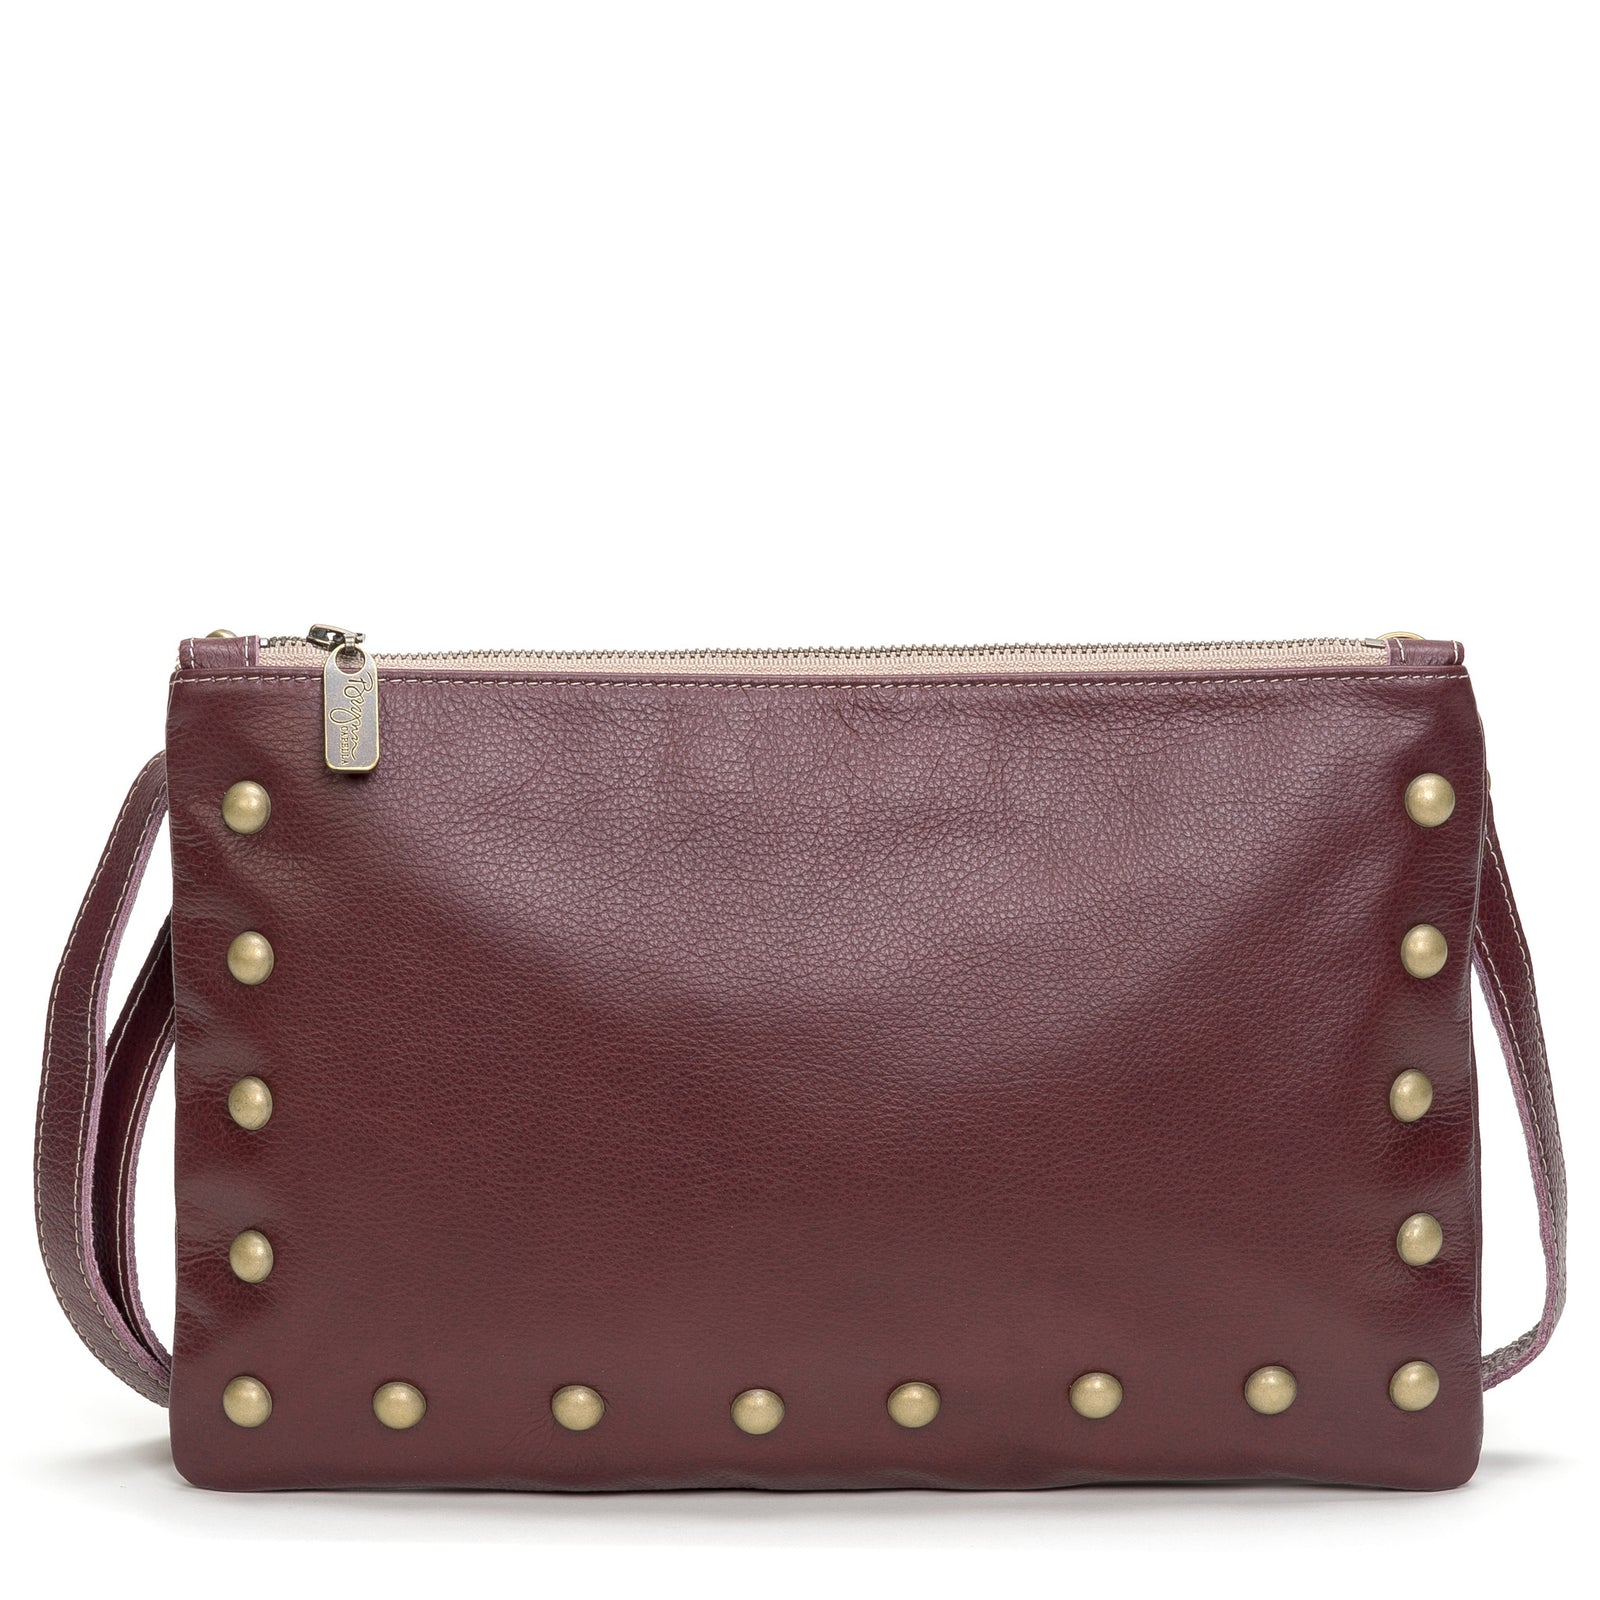 Nikki Clutch/Crossbody - Free Love - Brynn Capella, Small Crossbody